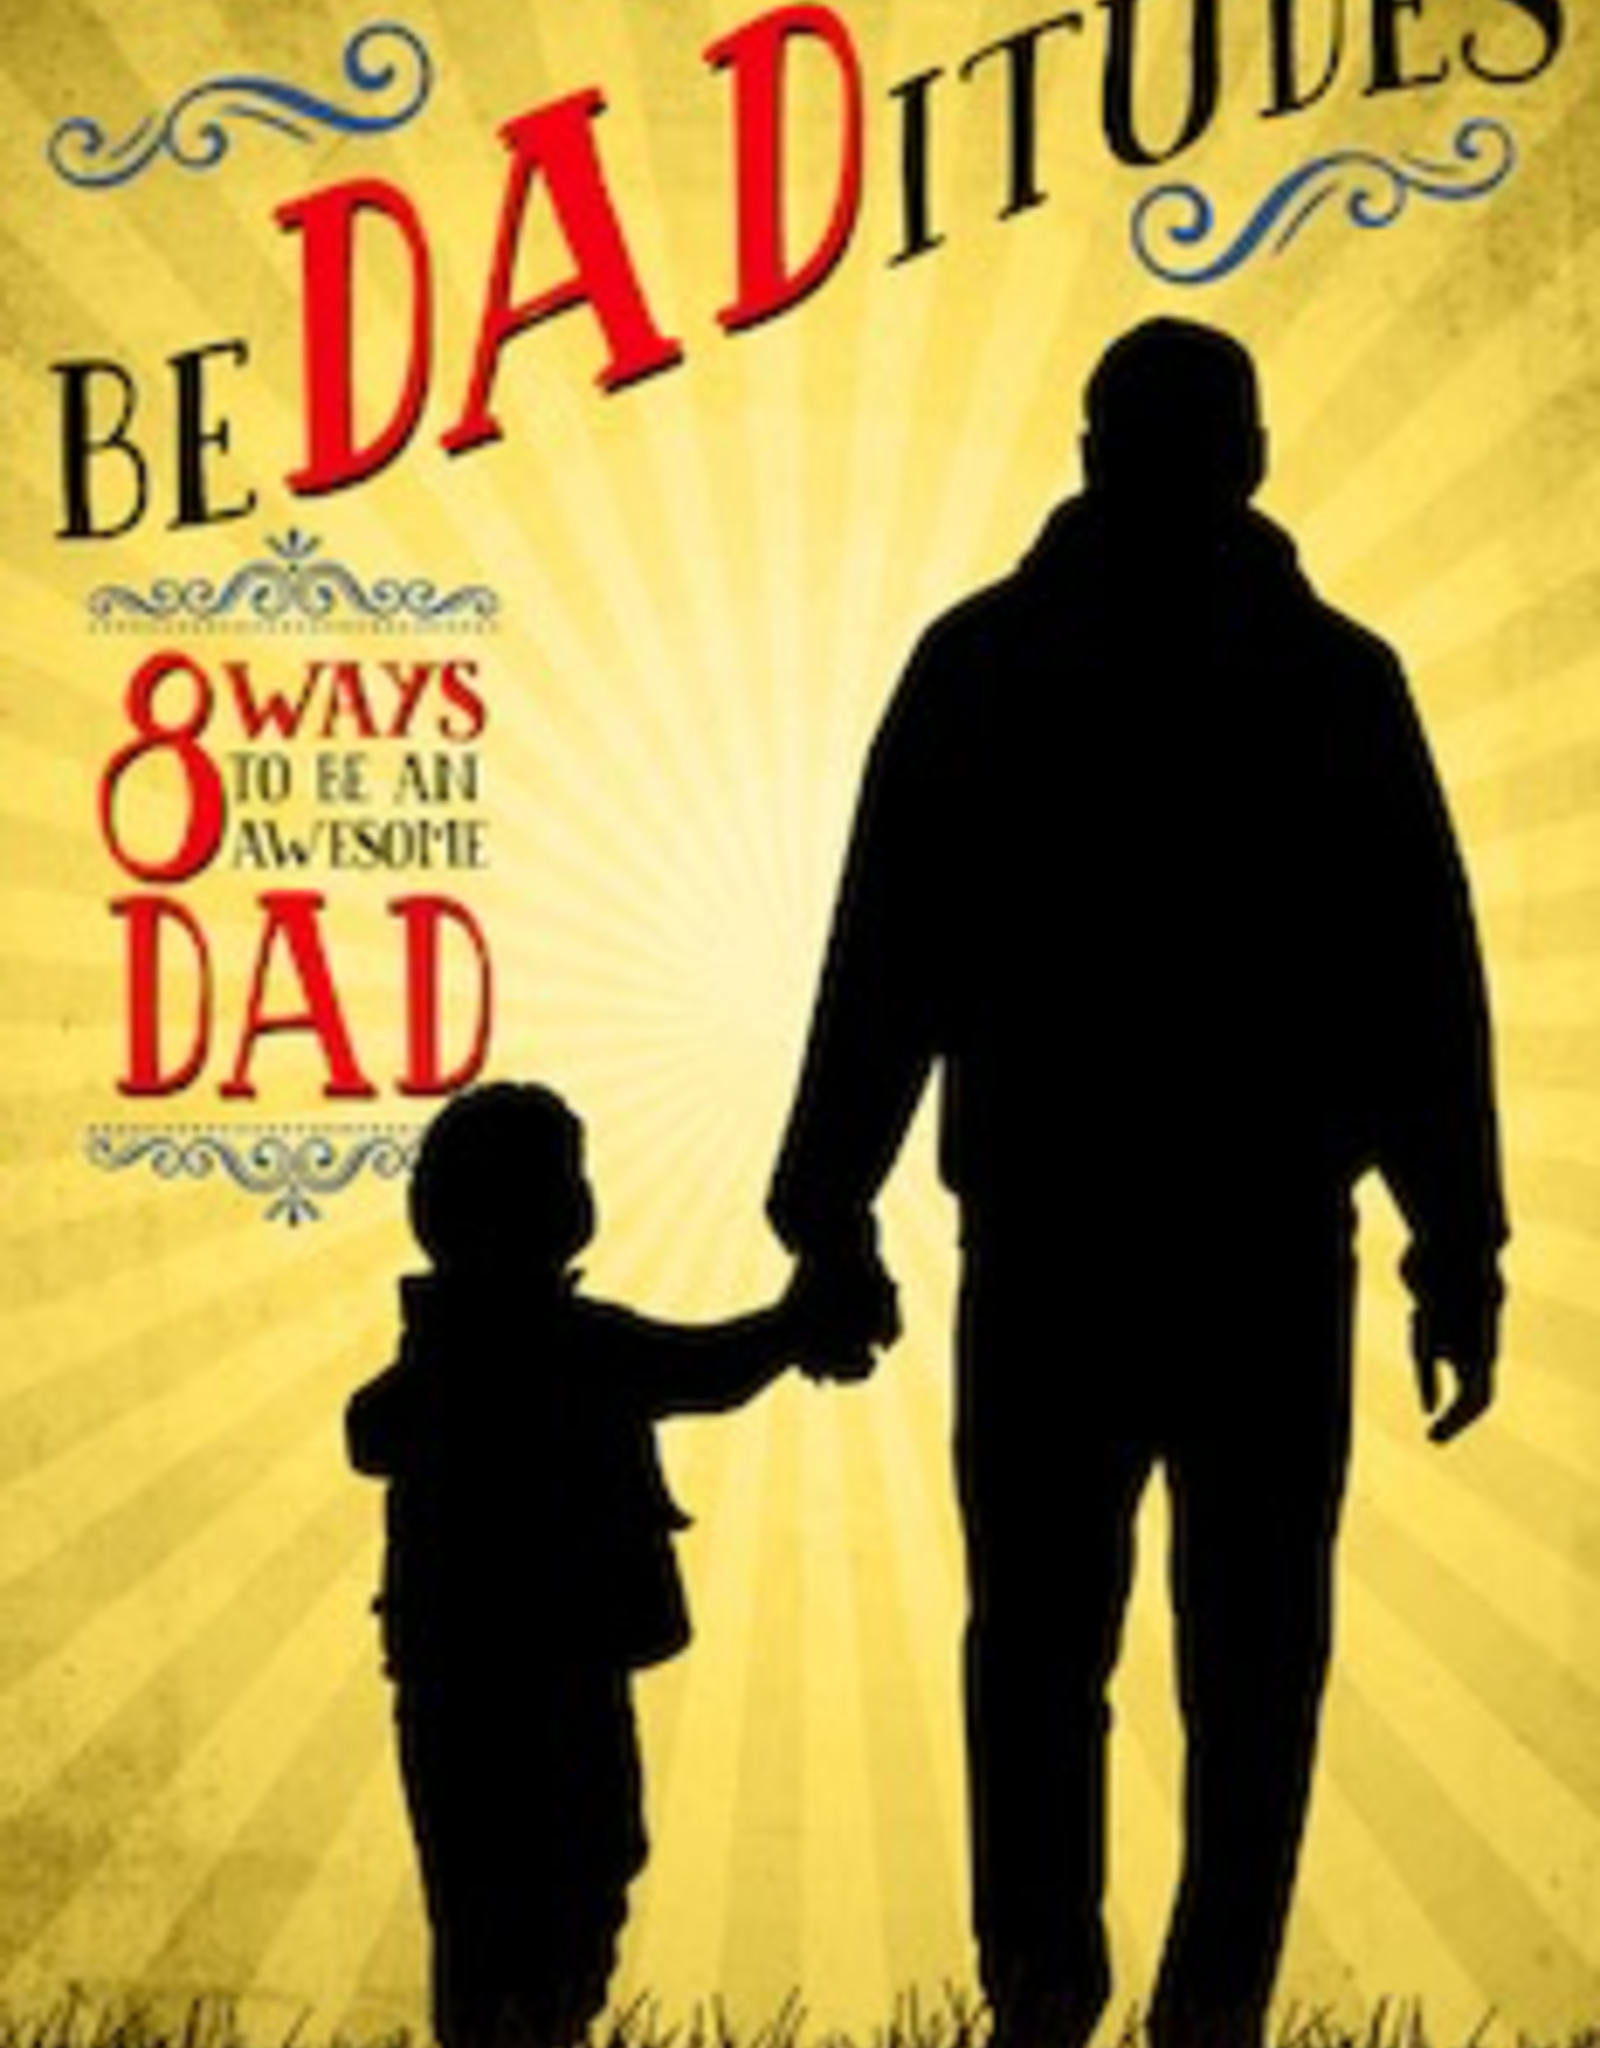 Ave Maria Press BeDADitudes:  8 Ways to Be an Awesome Dad, by Gregory Popcak (paperback)